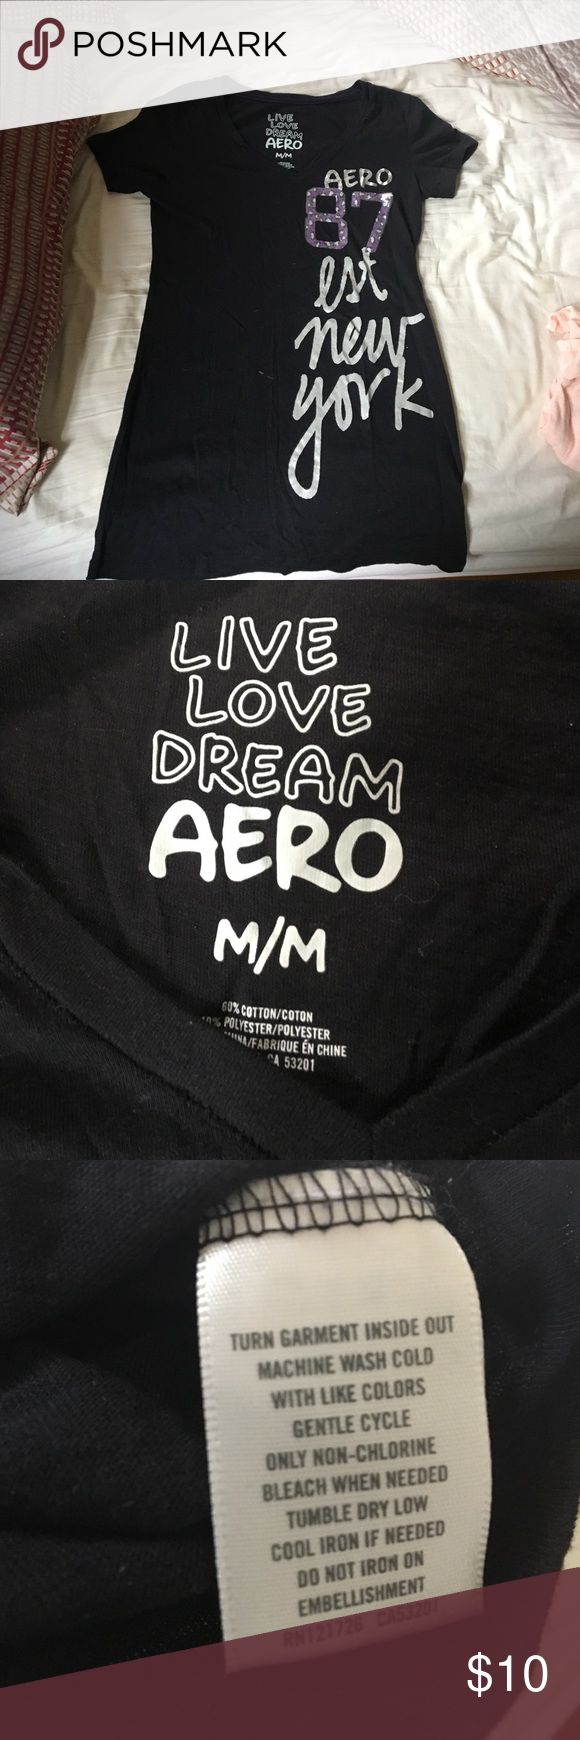 """Aeropostale black v neck T shirt Black v neck T shirt from Aeropostale , with the words """"Aero 87 Est New York"""" written on it, very comfortable fit, size medium will be washed and steamed before mailing! Is kind of baggy and long on me, and I am 5'0 Aeropostale Shirts & Tops Tees - Short Sleeve"""